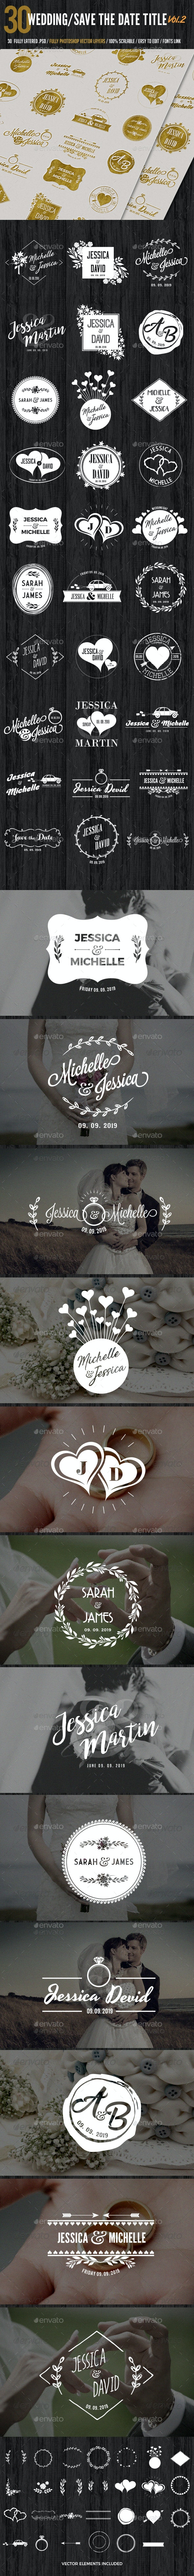 Wedding/Save the Date Titles/Typography Vol2 - Badges & Stickers Web Elements